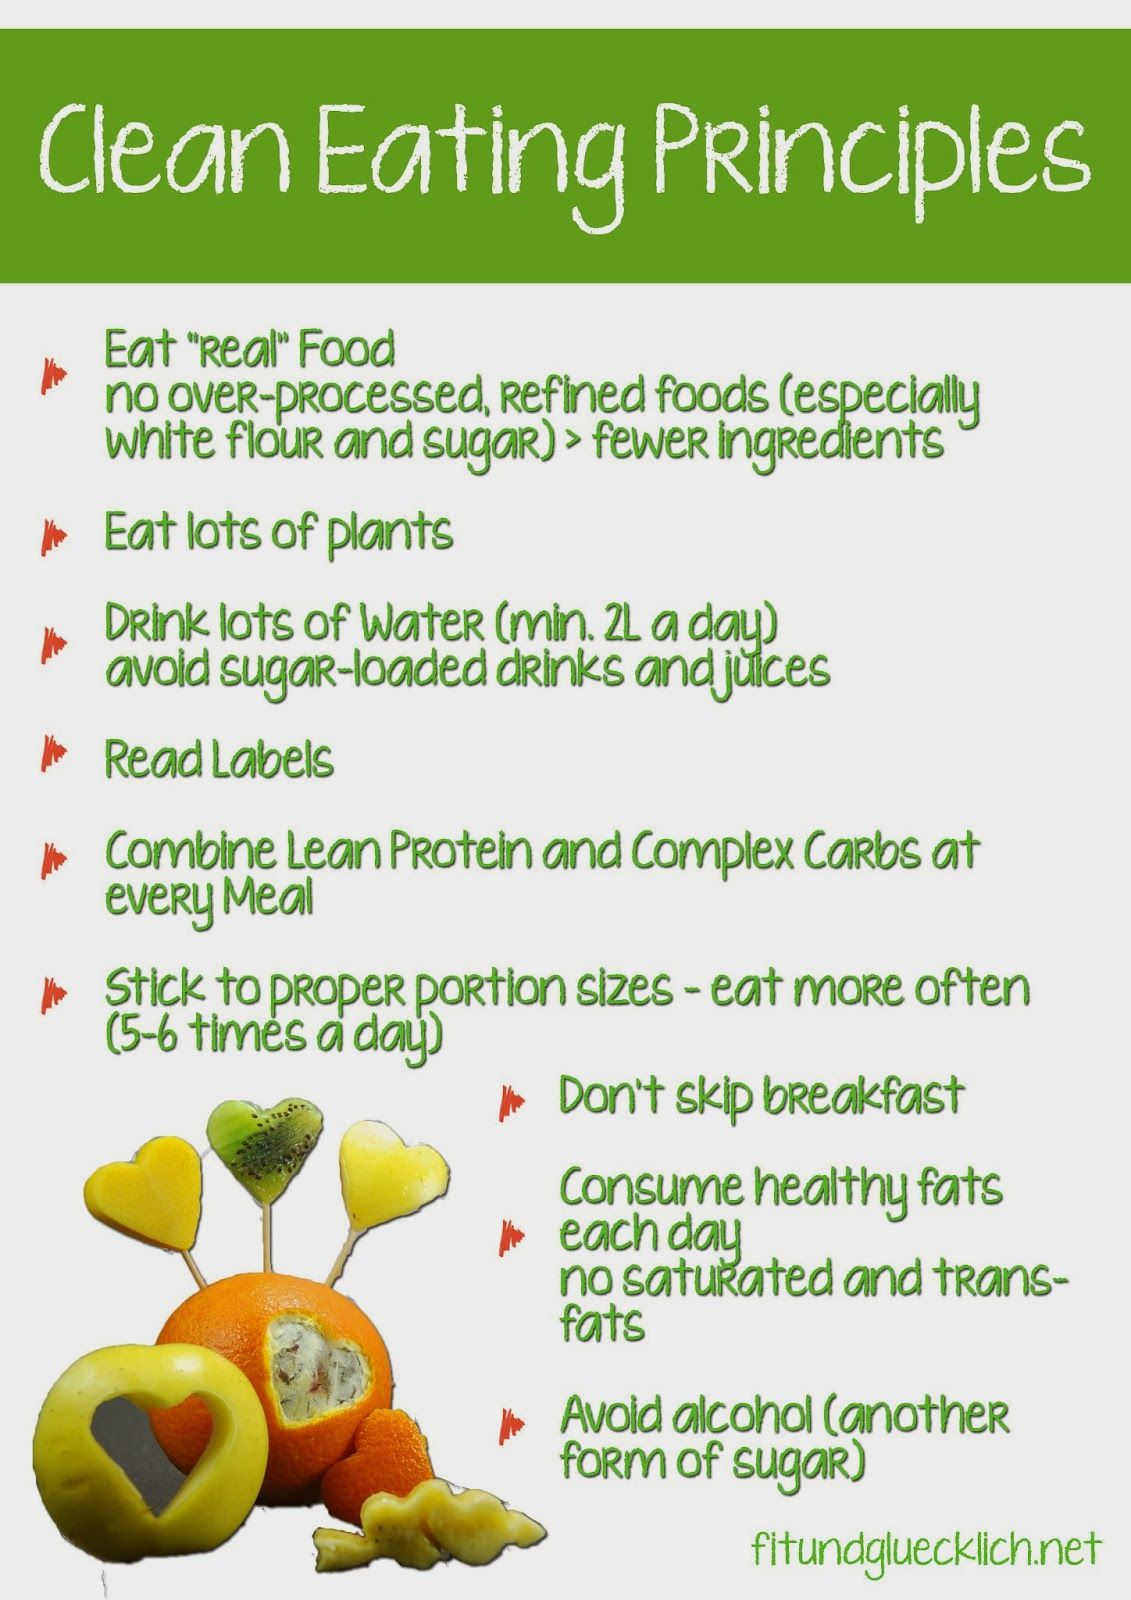 7 Tips for Clean Eating